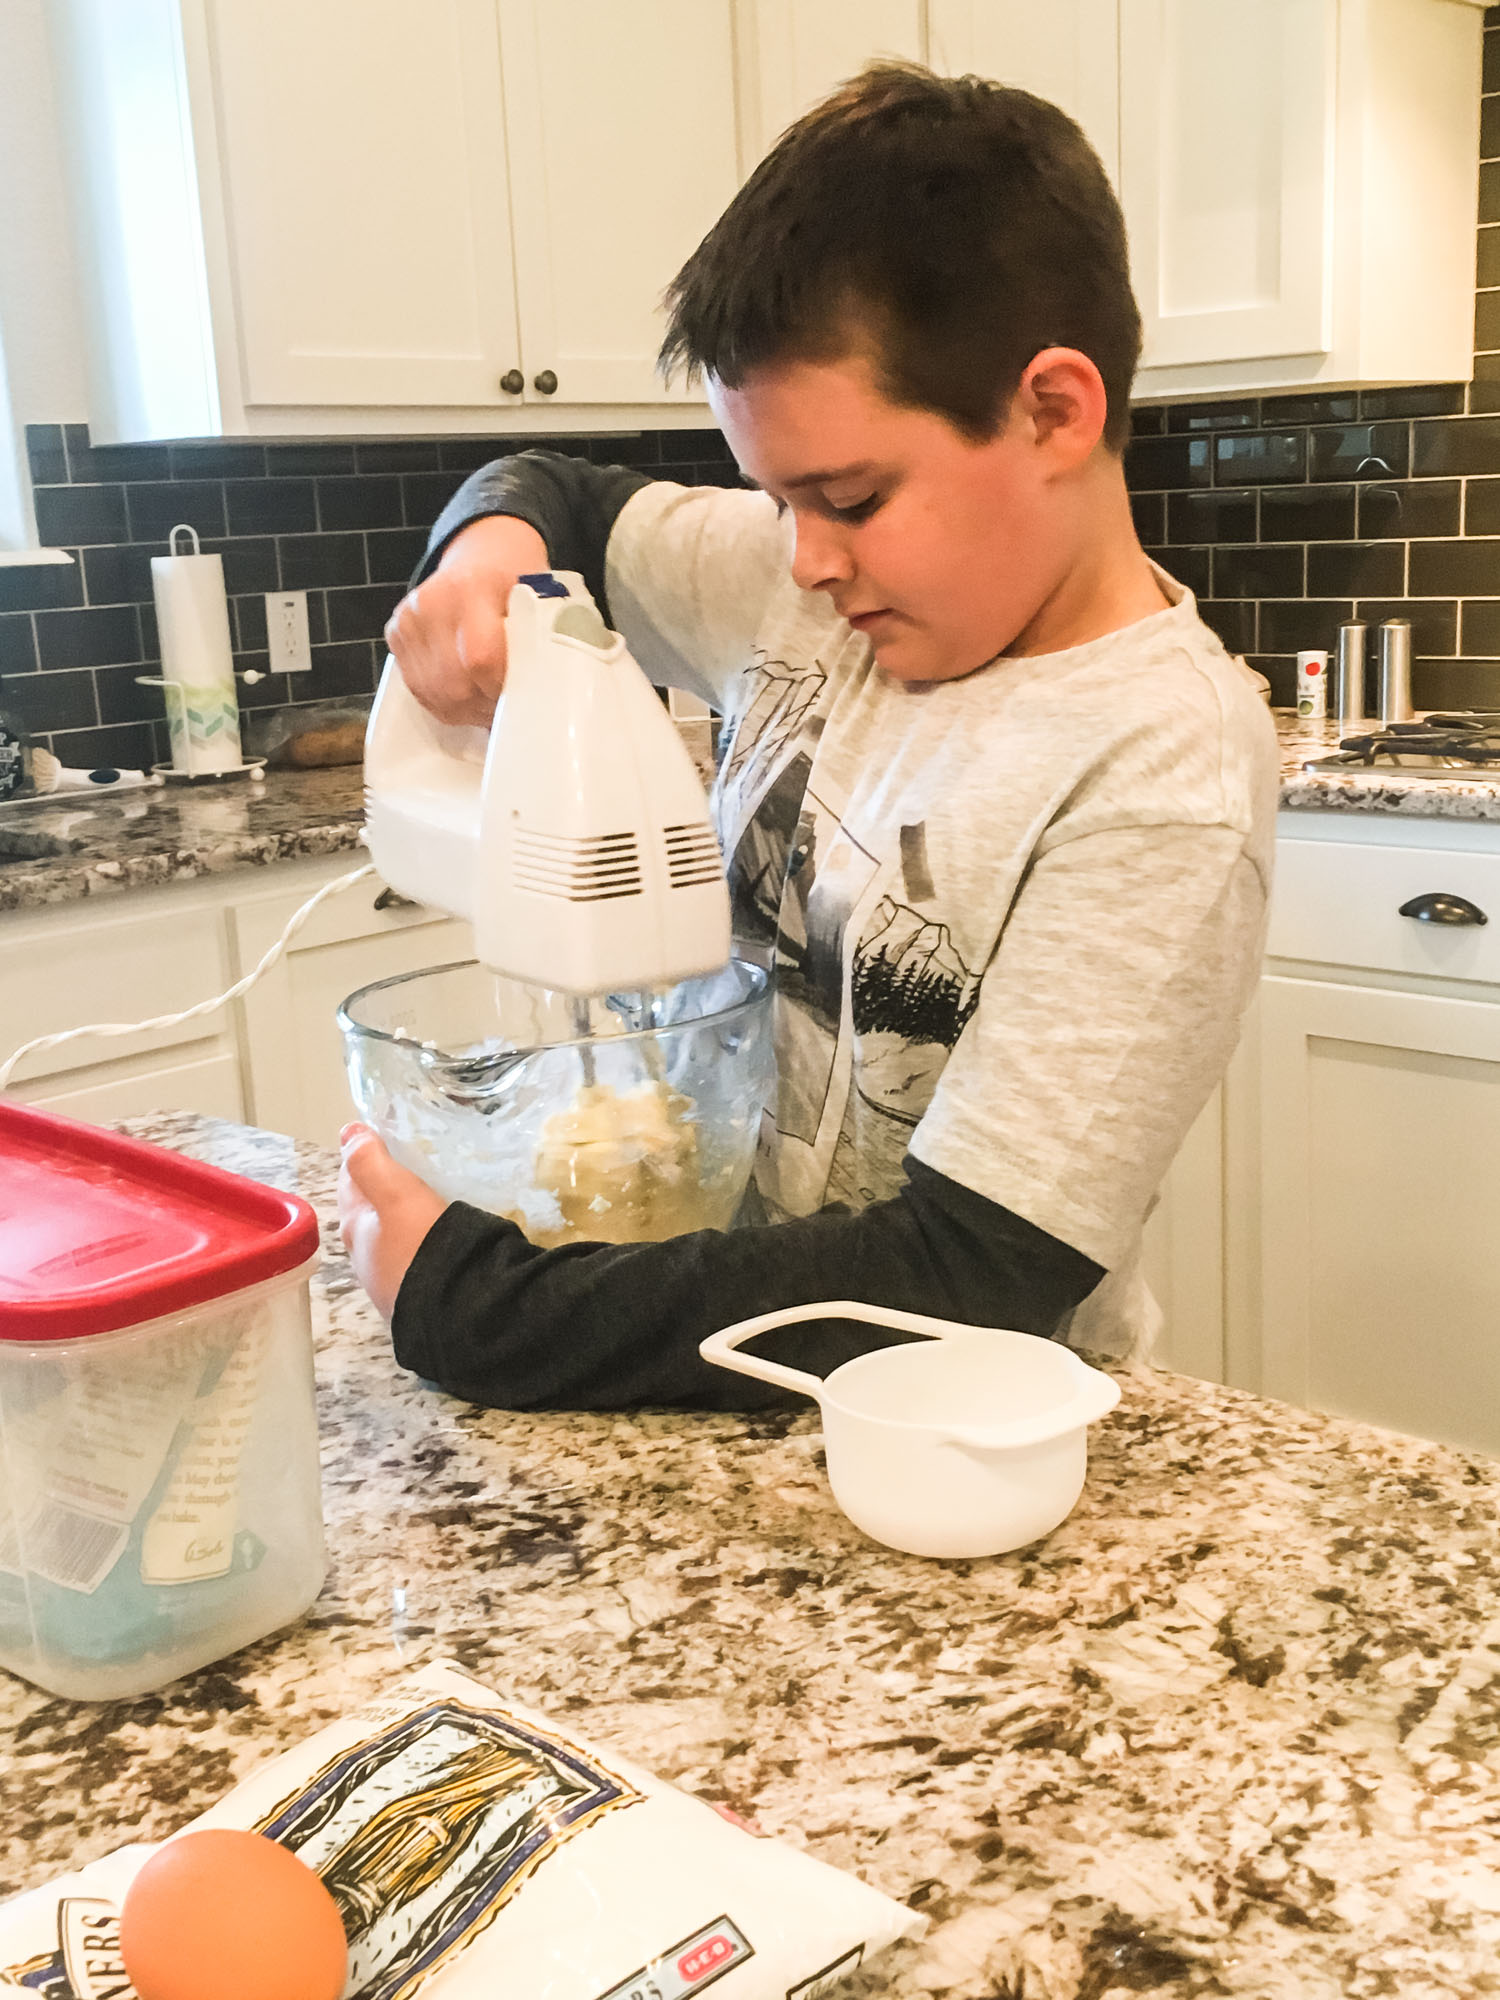 If he learns nothing else in life, at least he can operate a mixer!